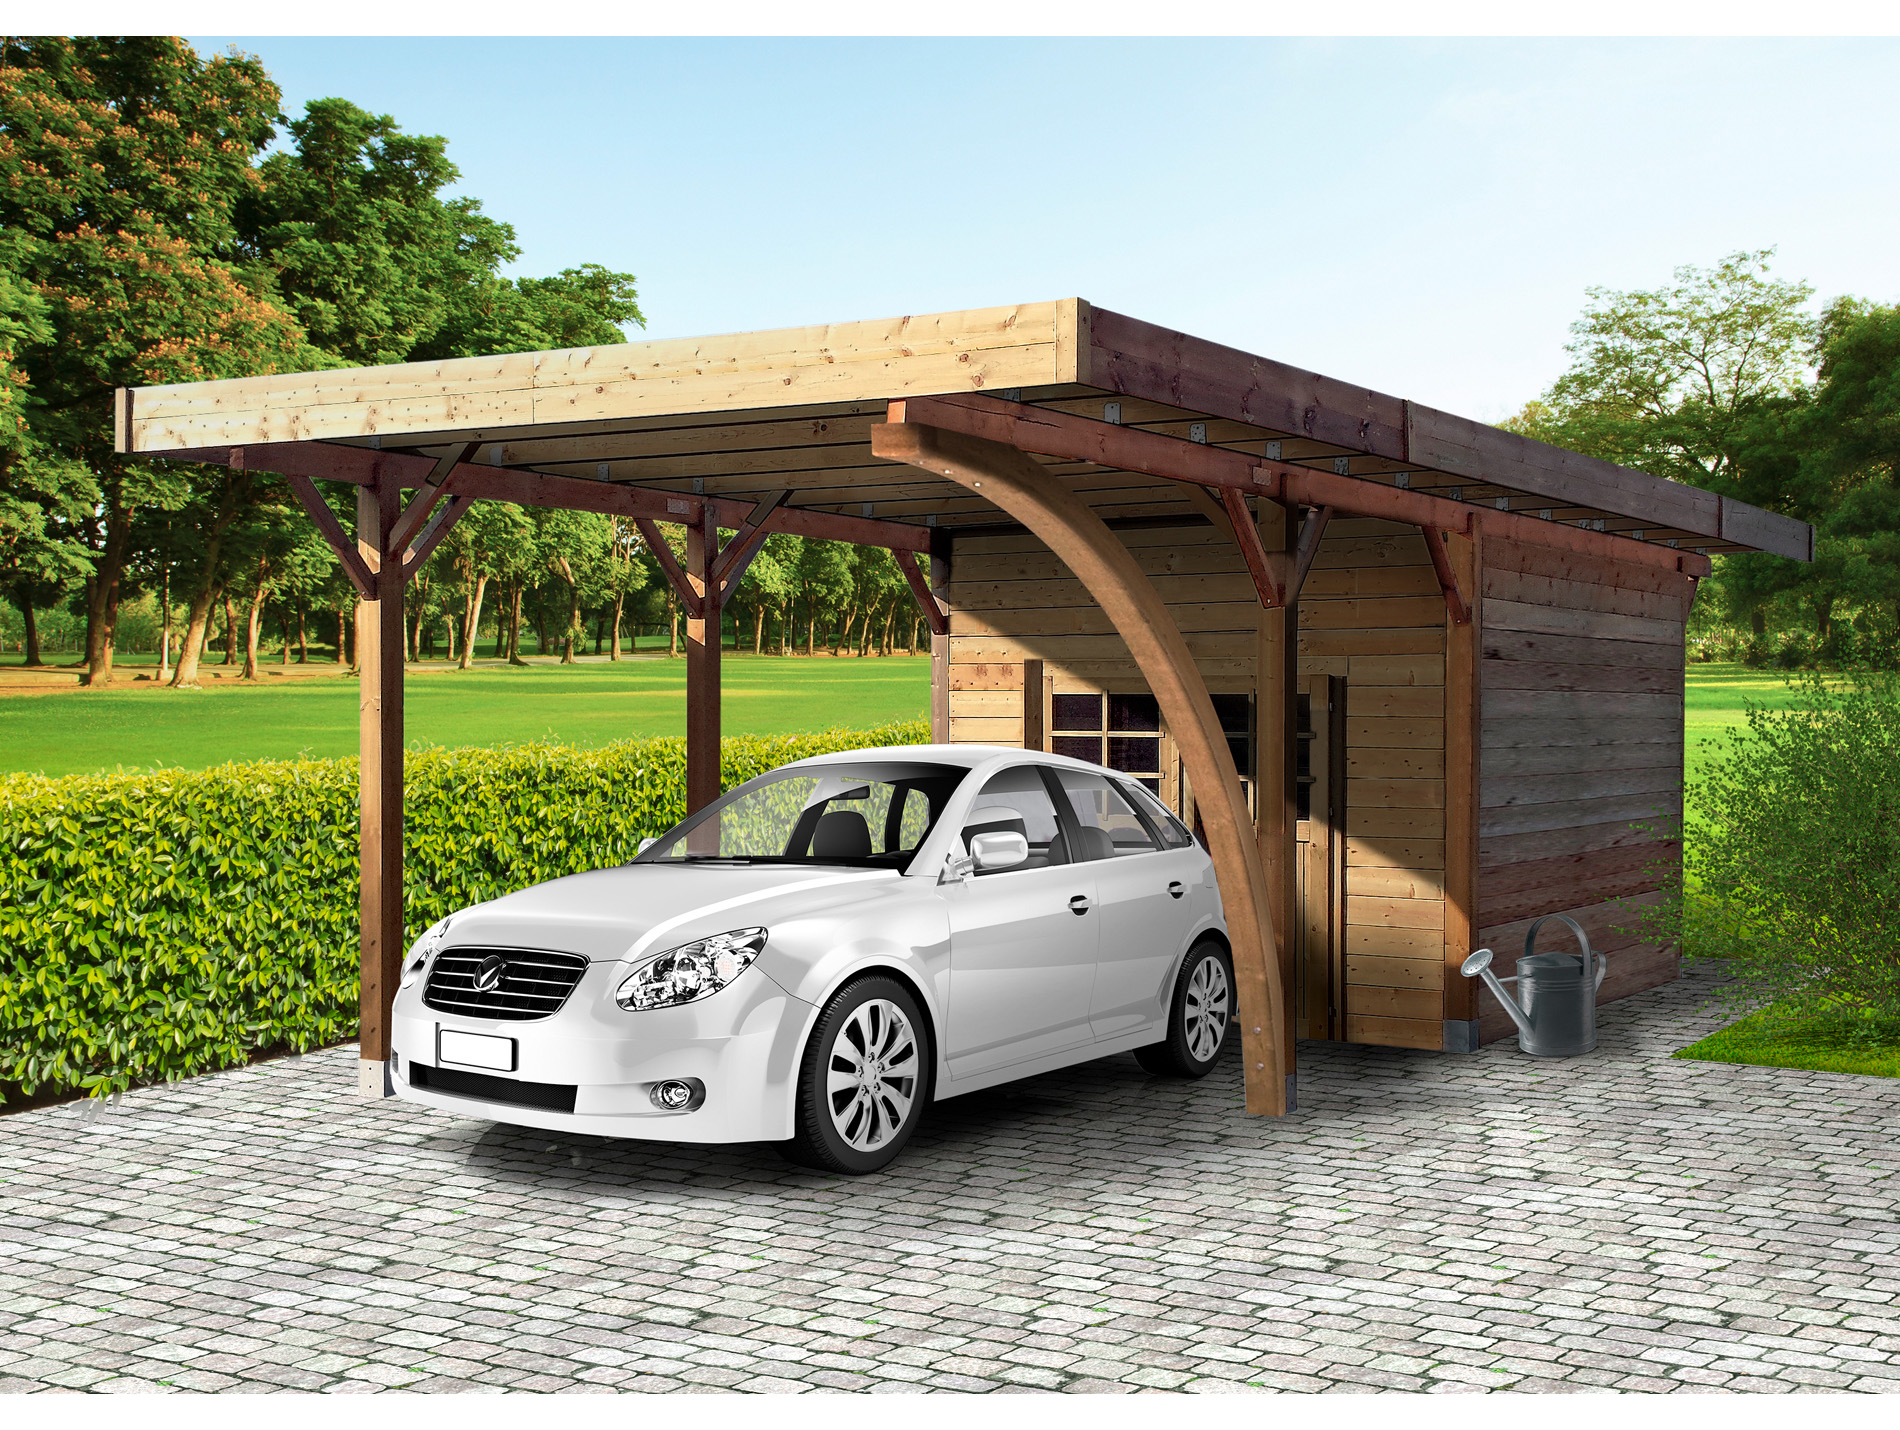 carport avec abri abris de jardin carports pergolas. Black Bedroom Furniture Sets. Home Design Ideas